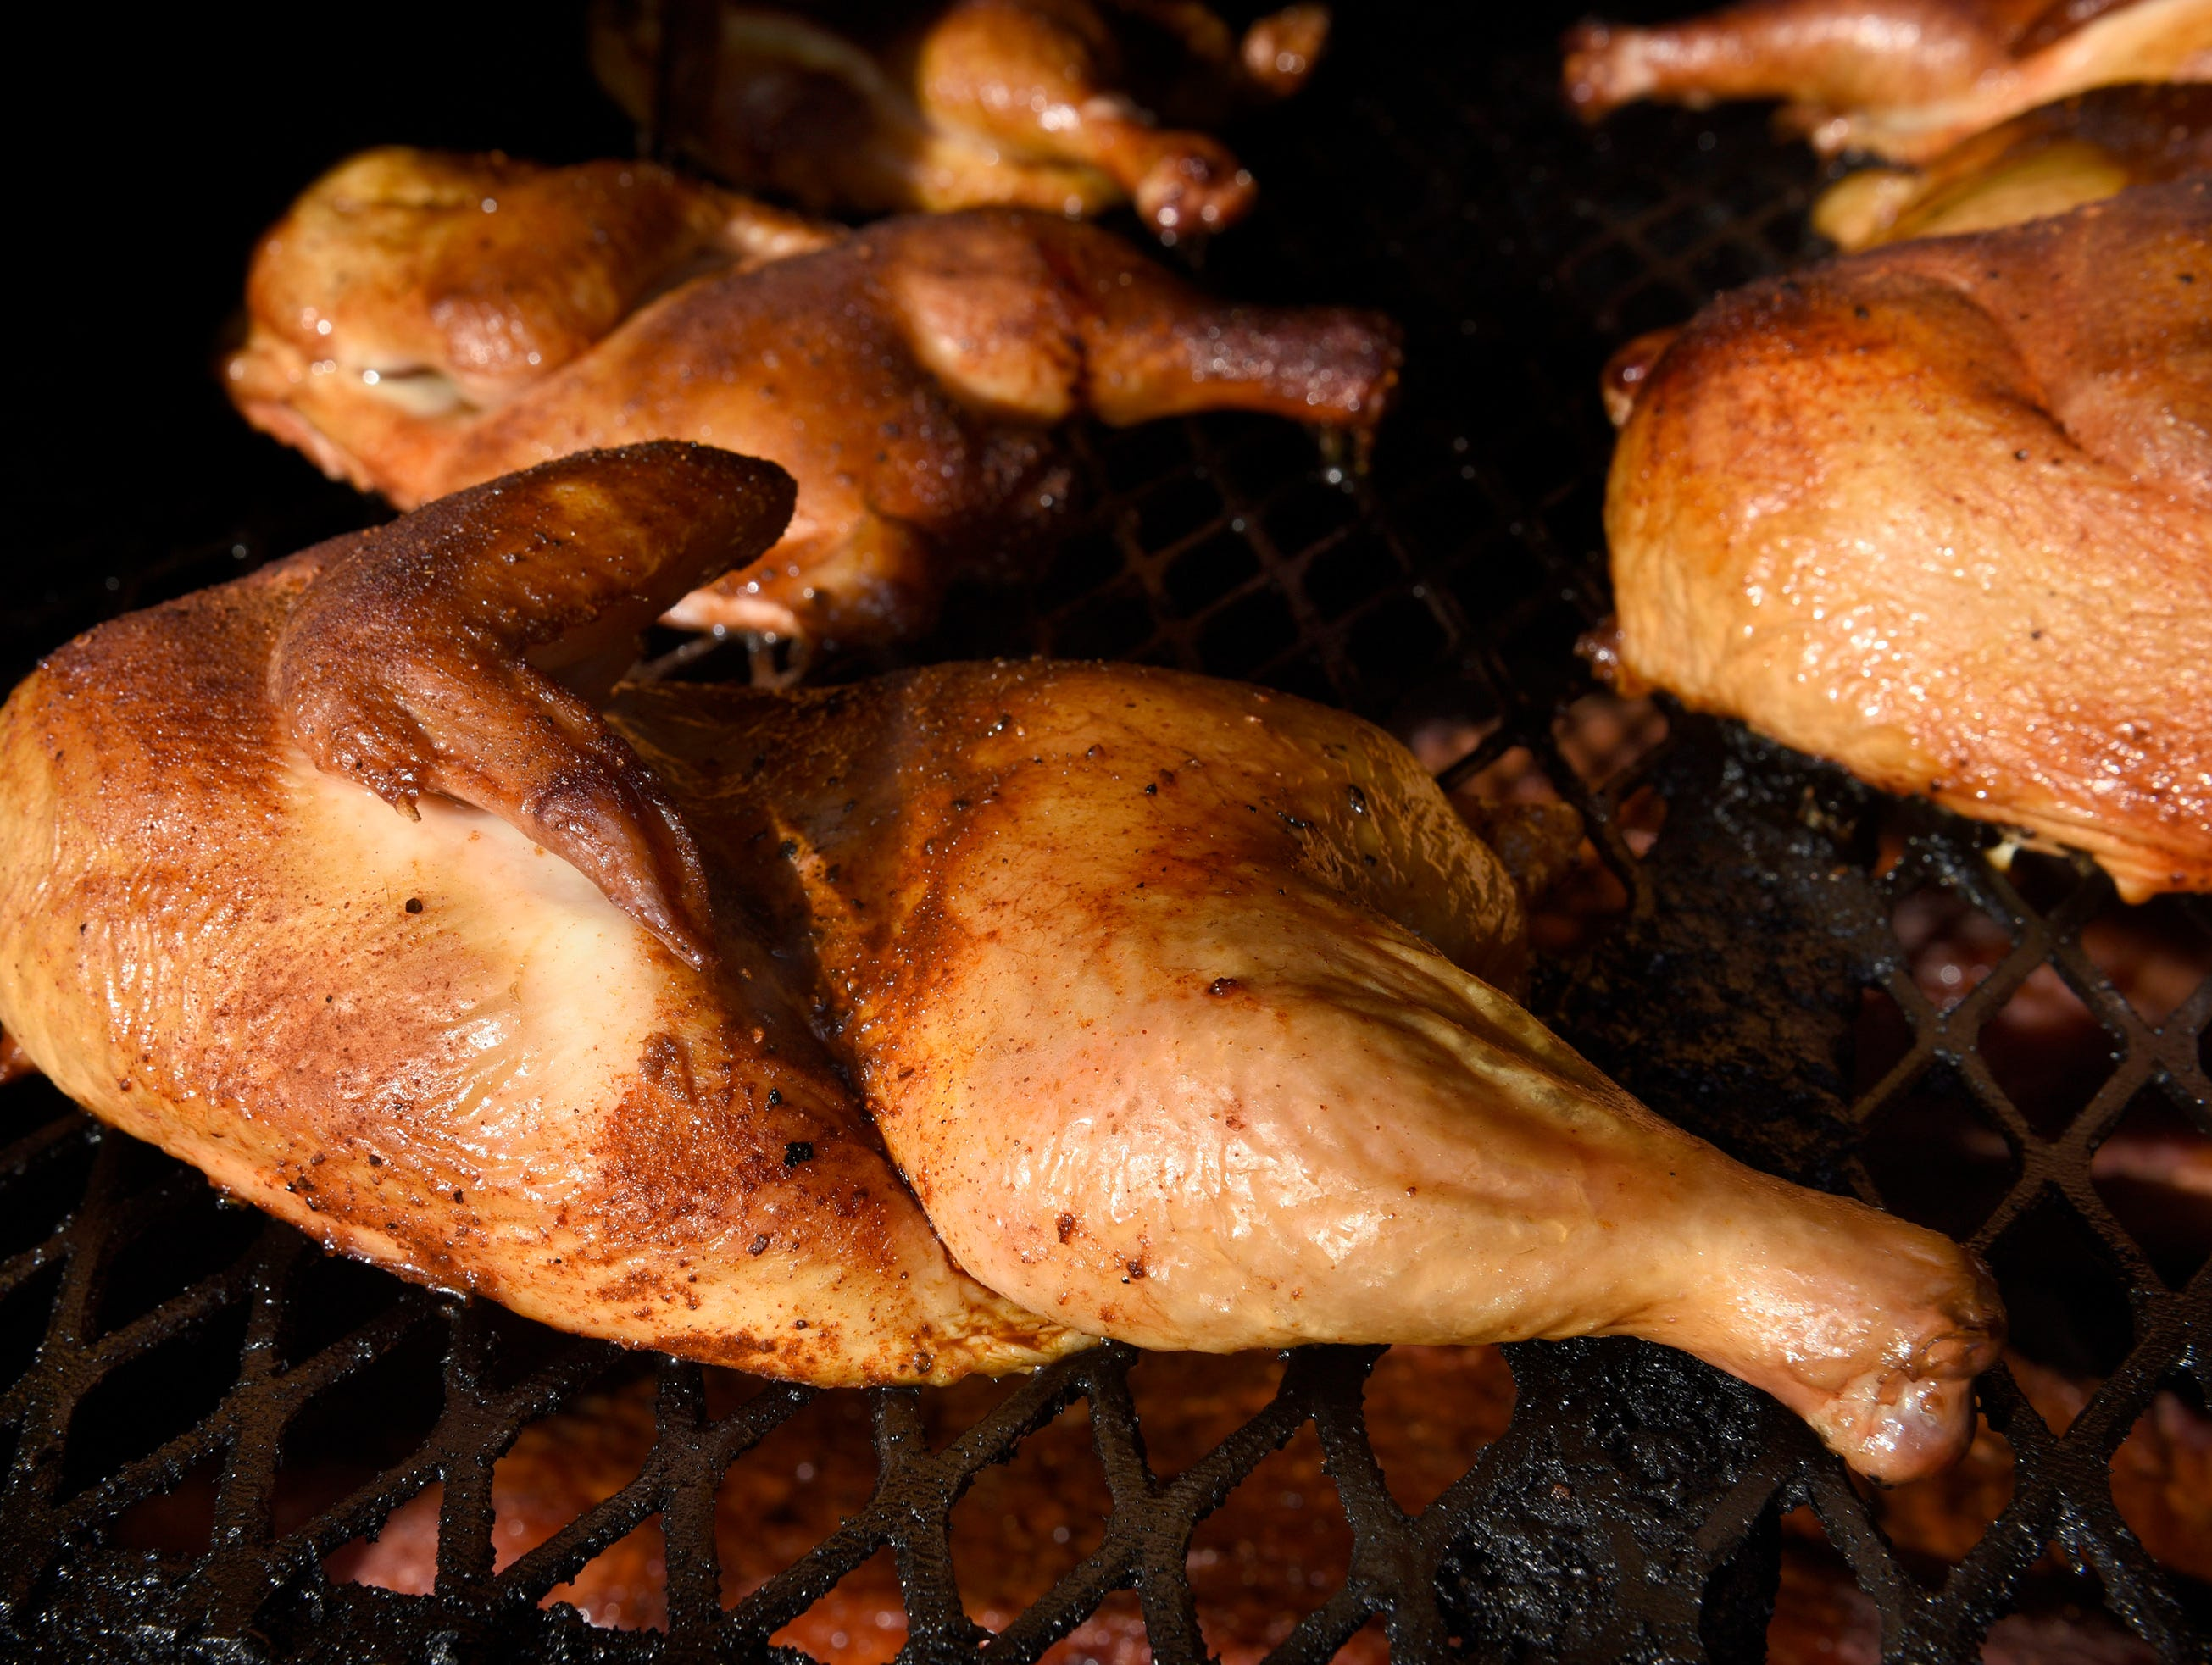 Chicken on the smoker at Max and Bella's Smokehouse in Plymouth.